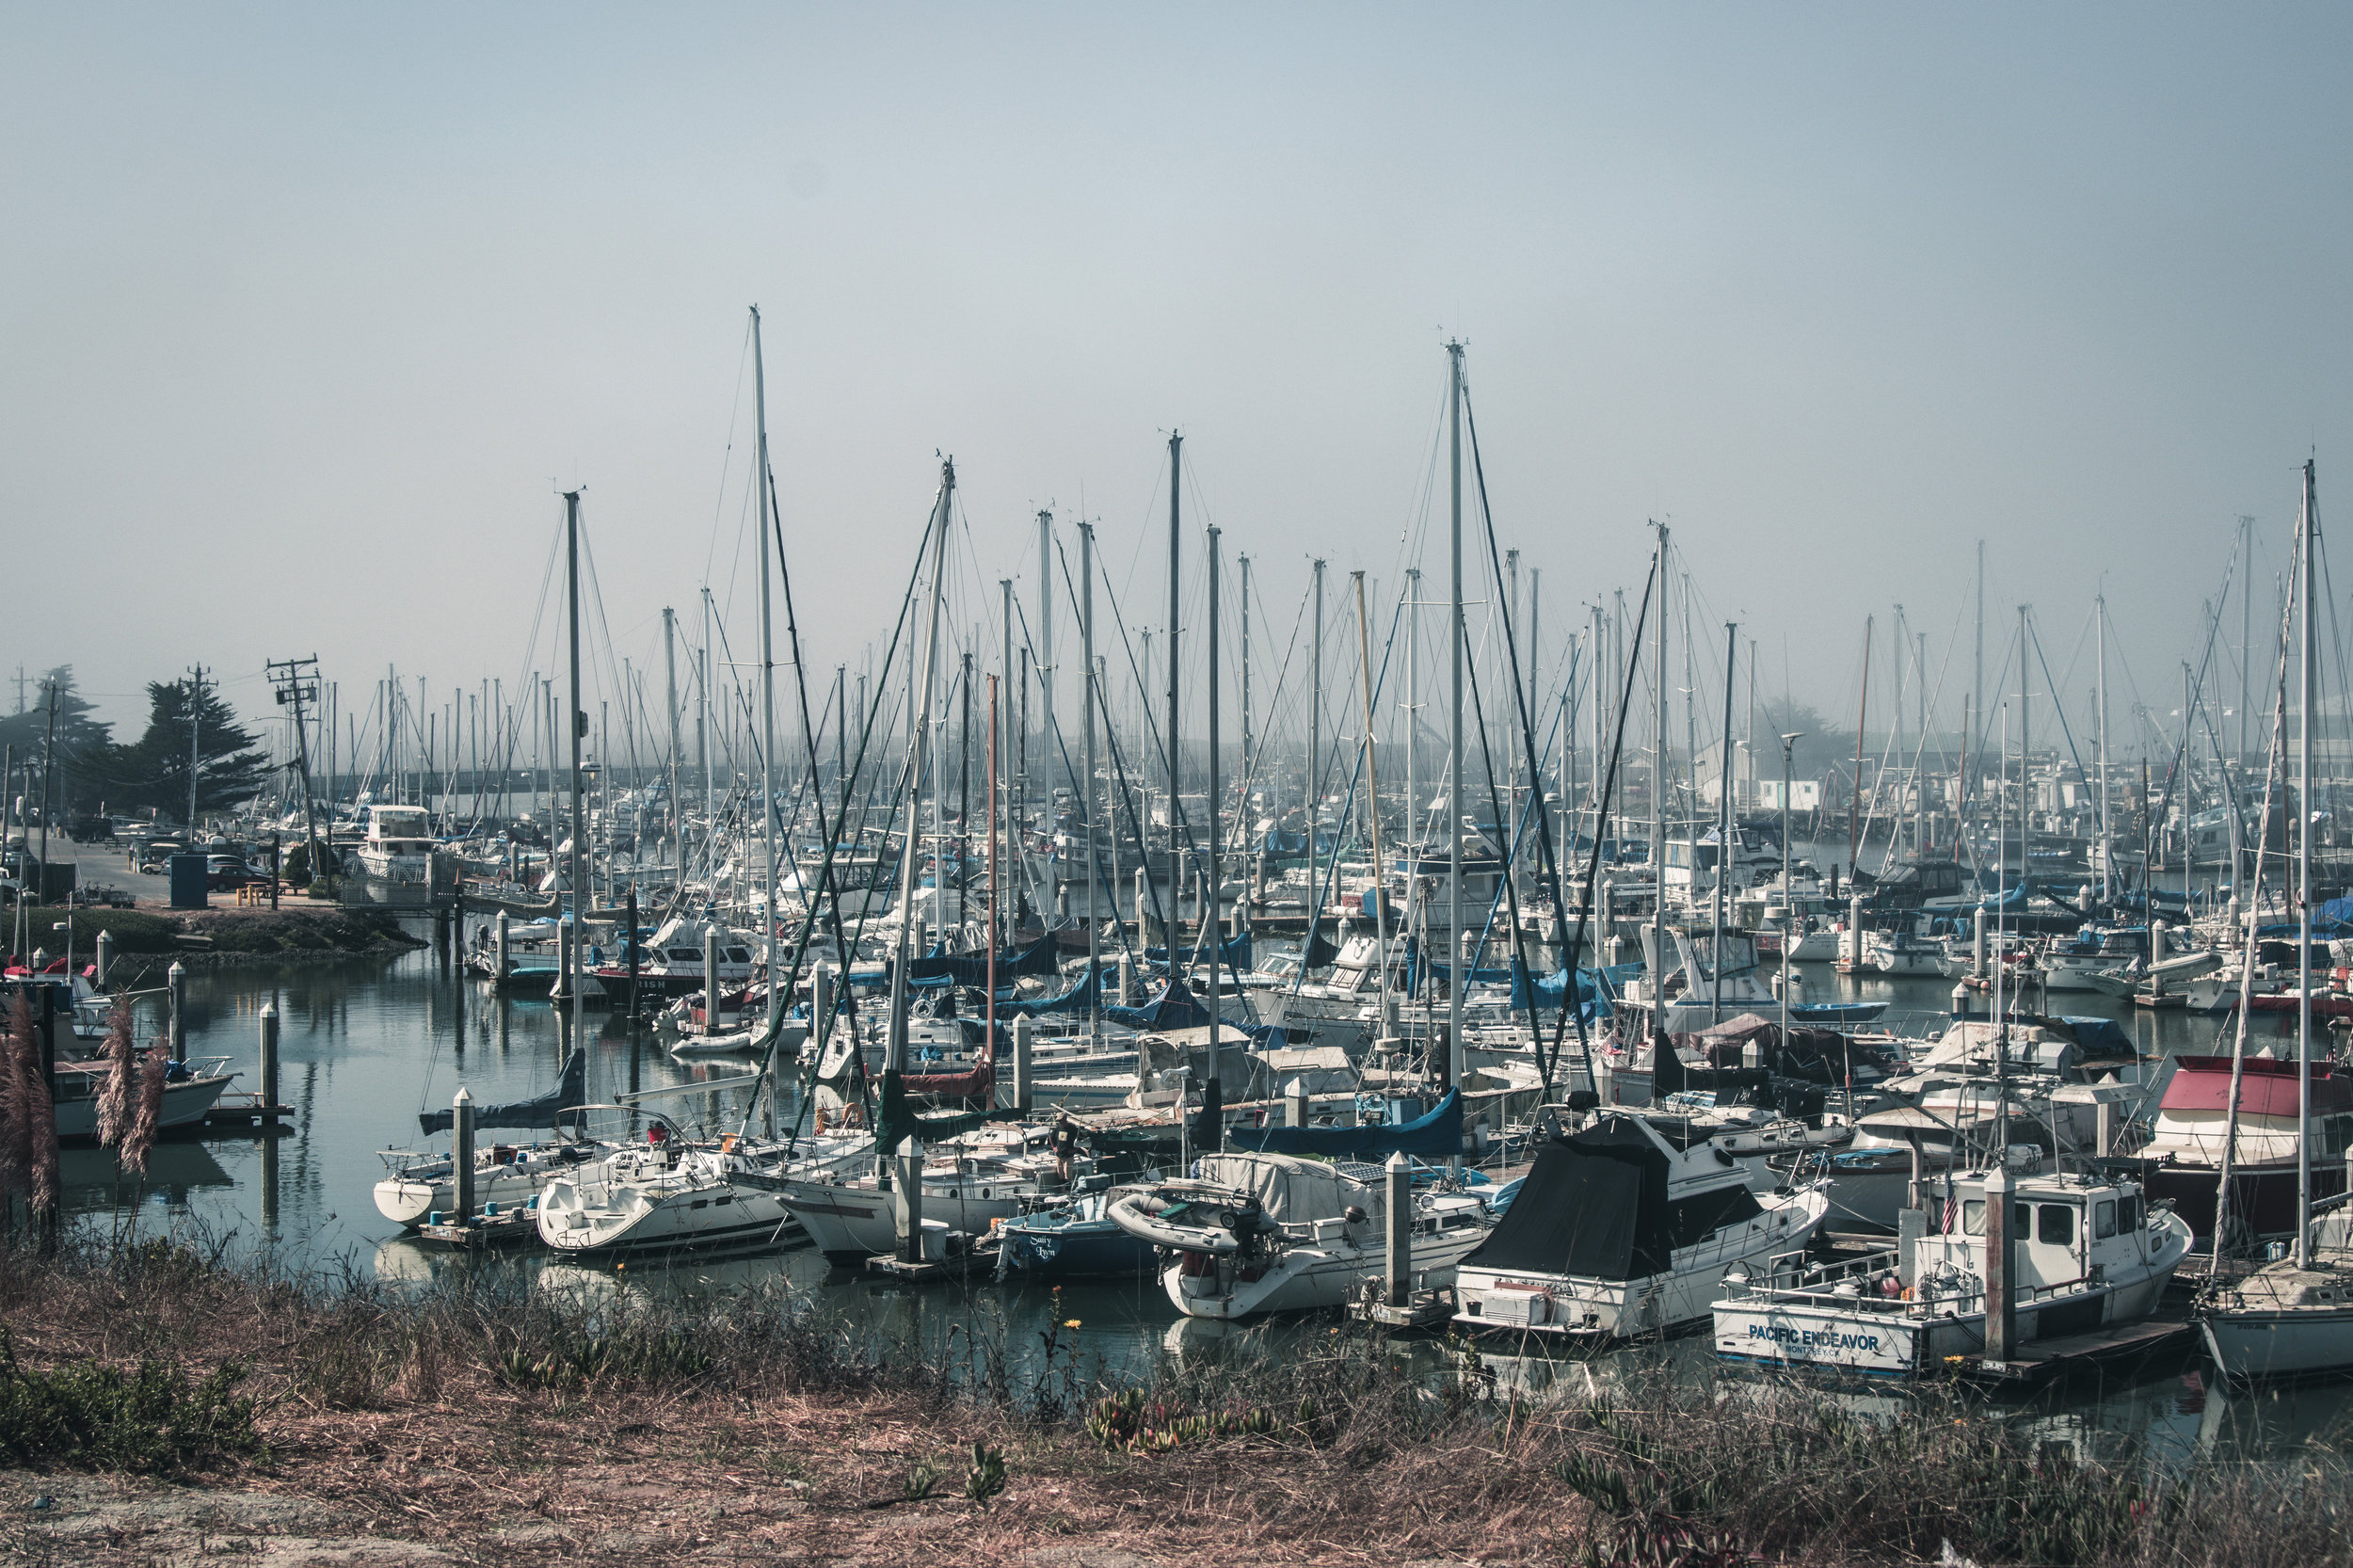 Boats Docked on the Pacific